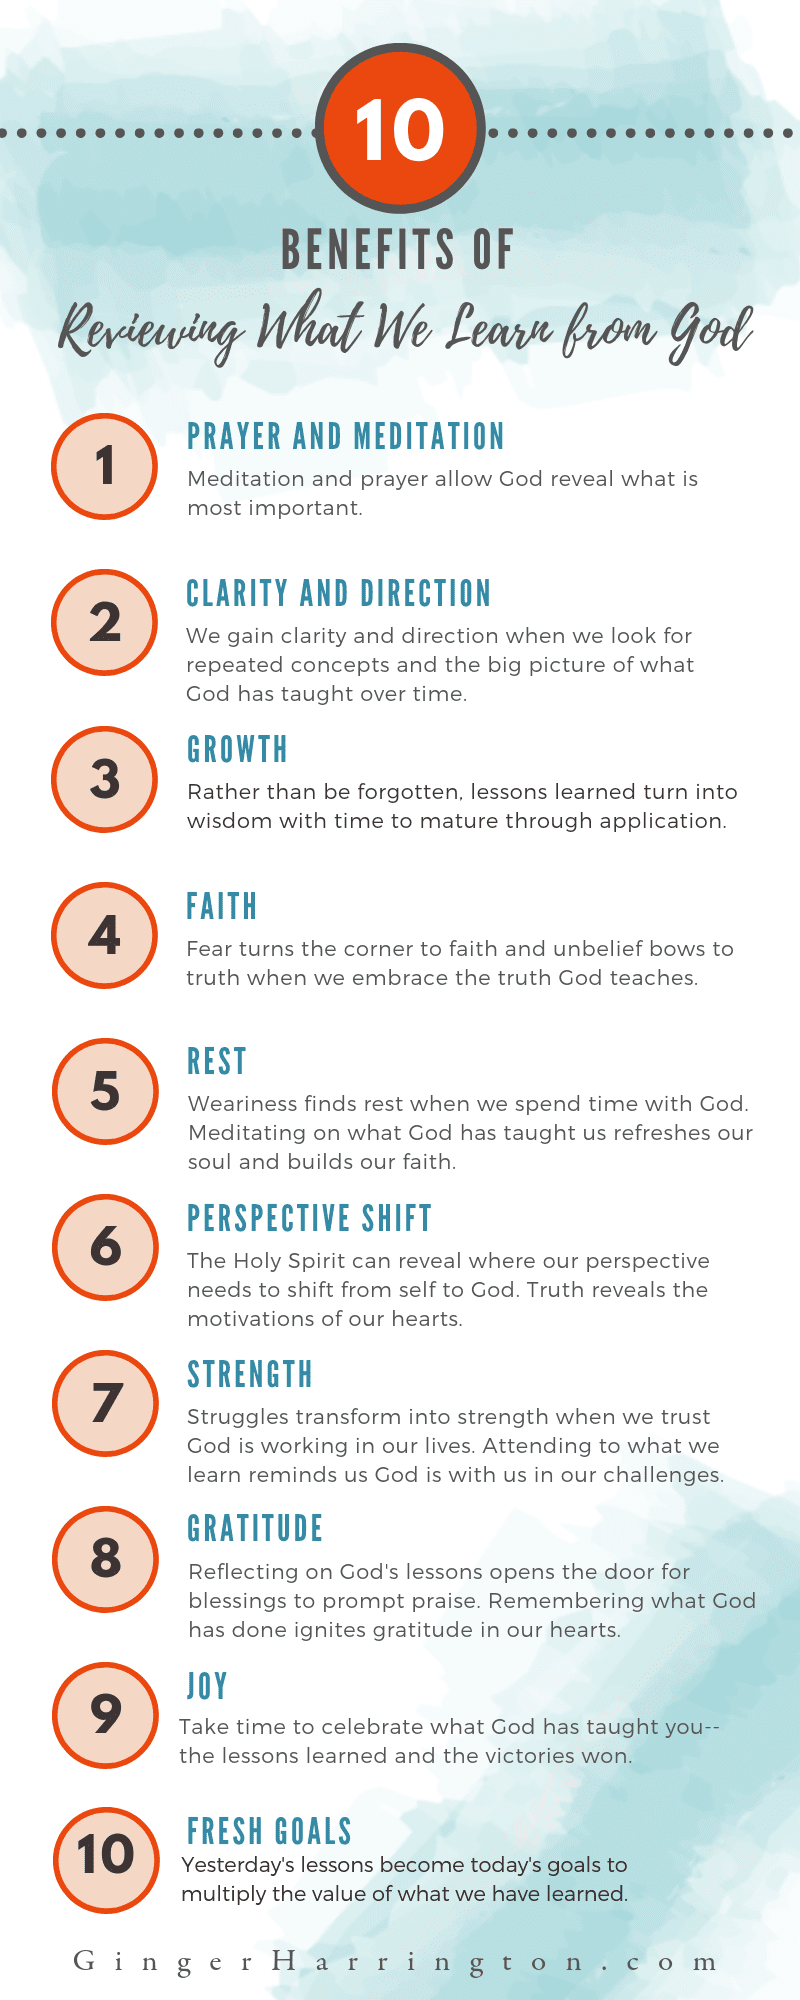 Discover the benefits of reviewing what you learn from God in your Quiet Time, devotions, or Bible study. Are you ready to maximize spiritual growth and start fresh this year with this powerful learning and journaling tool? Whether you journal with words, Bible journal with art, or keep study notes, this tool will ignite spiritual growth. Infographic with aqua water color swashes. Explains 10 Benefits of Reviewing what we learn from God. #BibleJournaling #Spiritualgrowth #Goalsetting